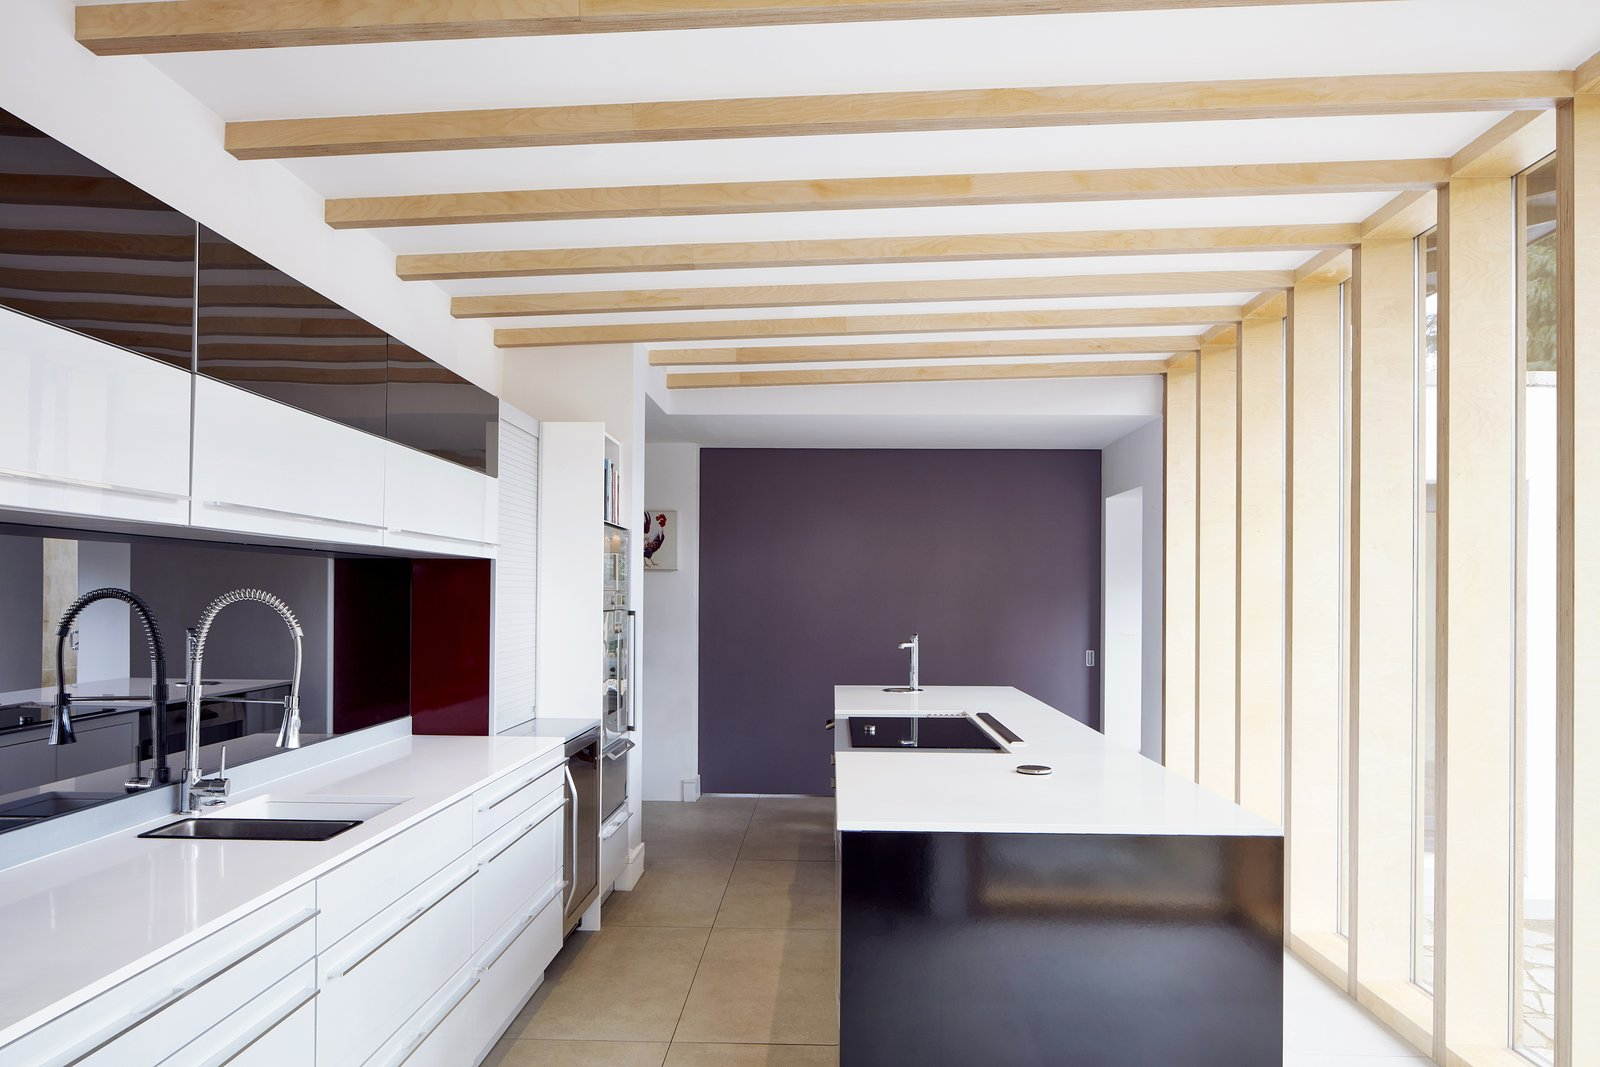 """Kitchen and White Cabinet Exposed beams continue into the kitchen ceiling, where minimal details and contrasting dark shades emphasize the natural materials. The window frames are positioned as """"fins"""" to draw in just enough southern-facing light to keep the room comfortable.  40+ Homes With Exposed Beams: Rustic to Modern by Luke Hopping"""